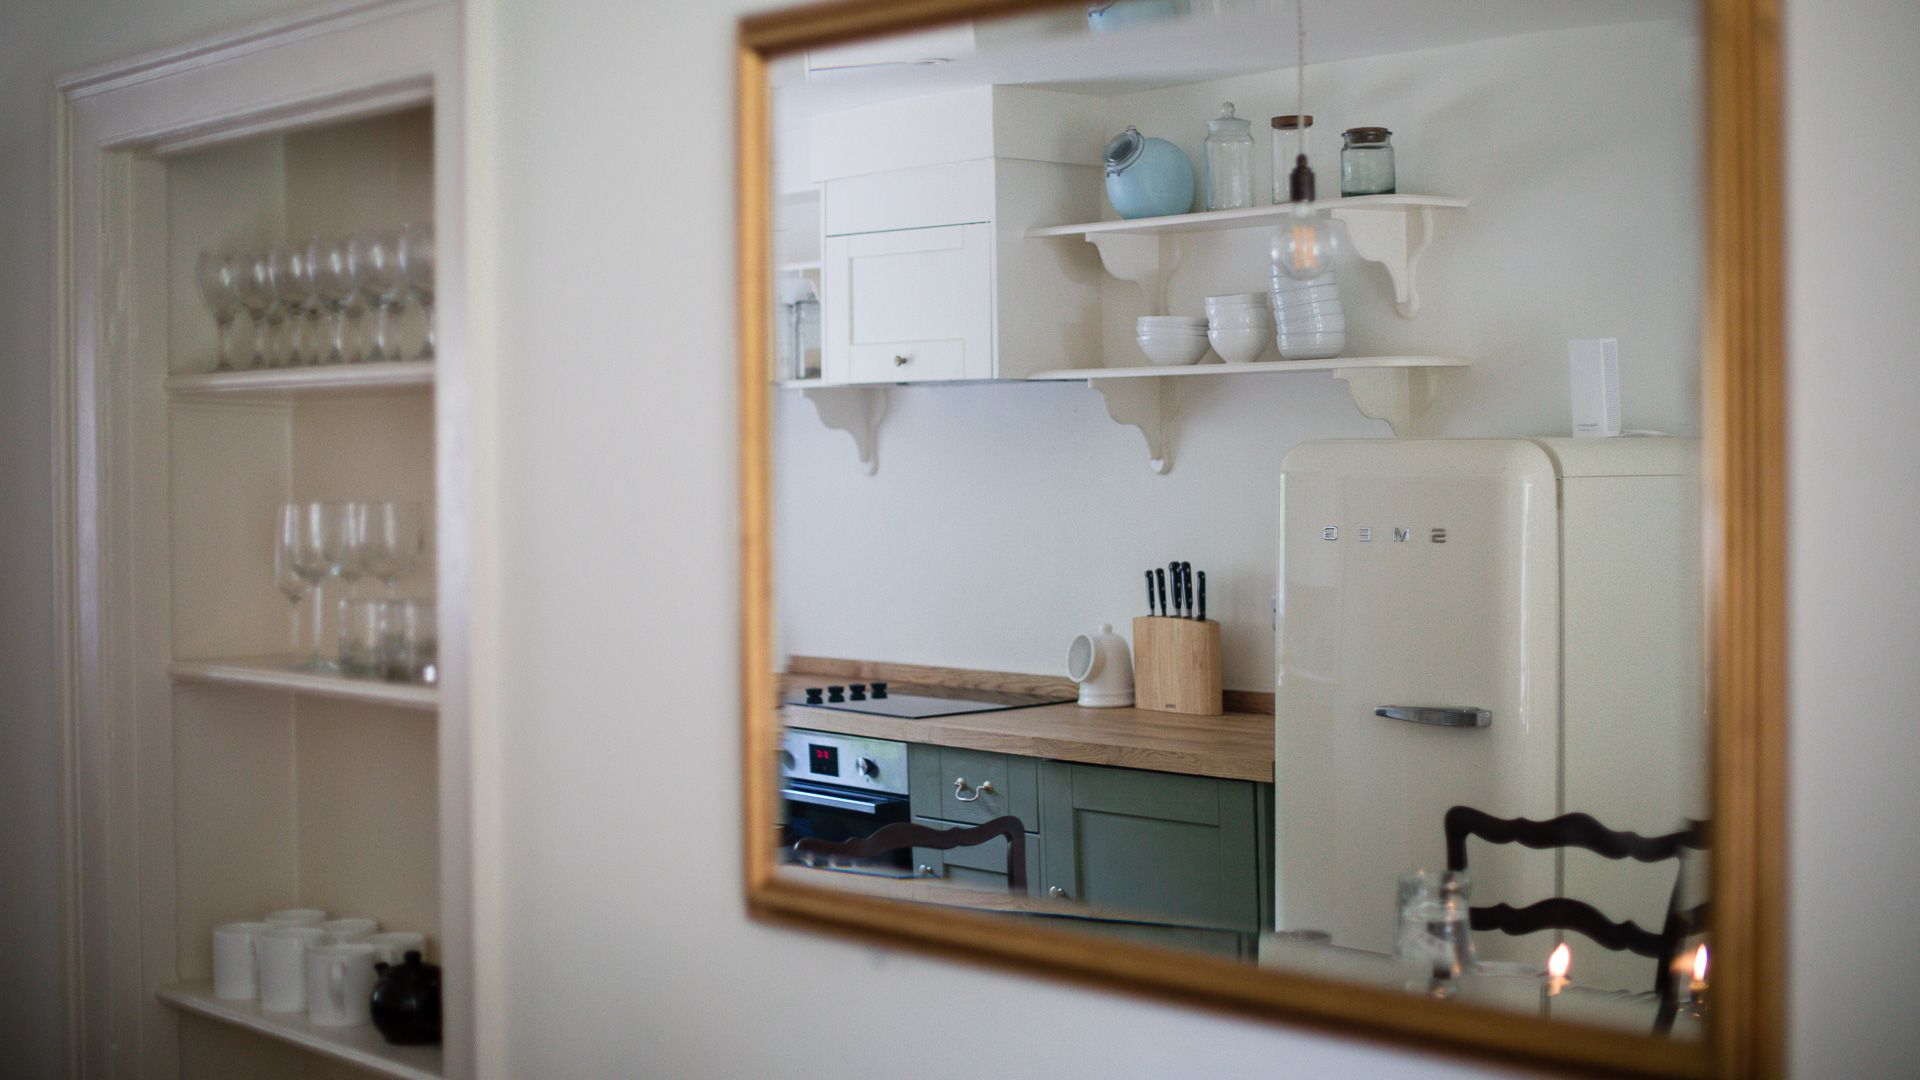 Kitchen/Dining Room Reflections, Temple Guiting Cottage, Bolthole Retreats